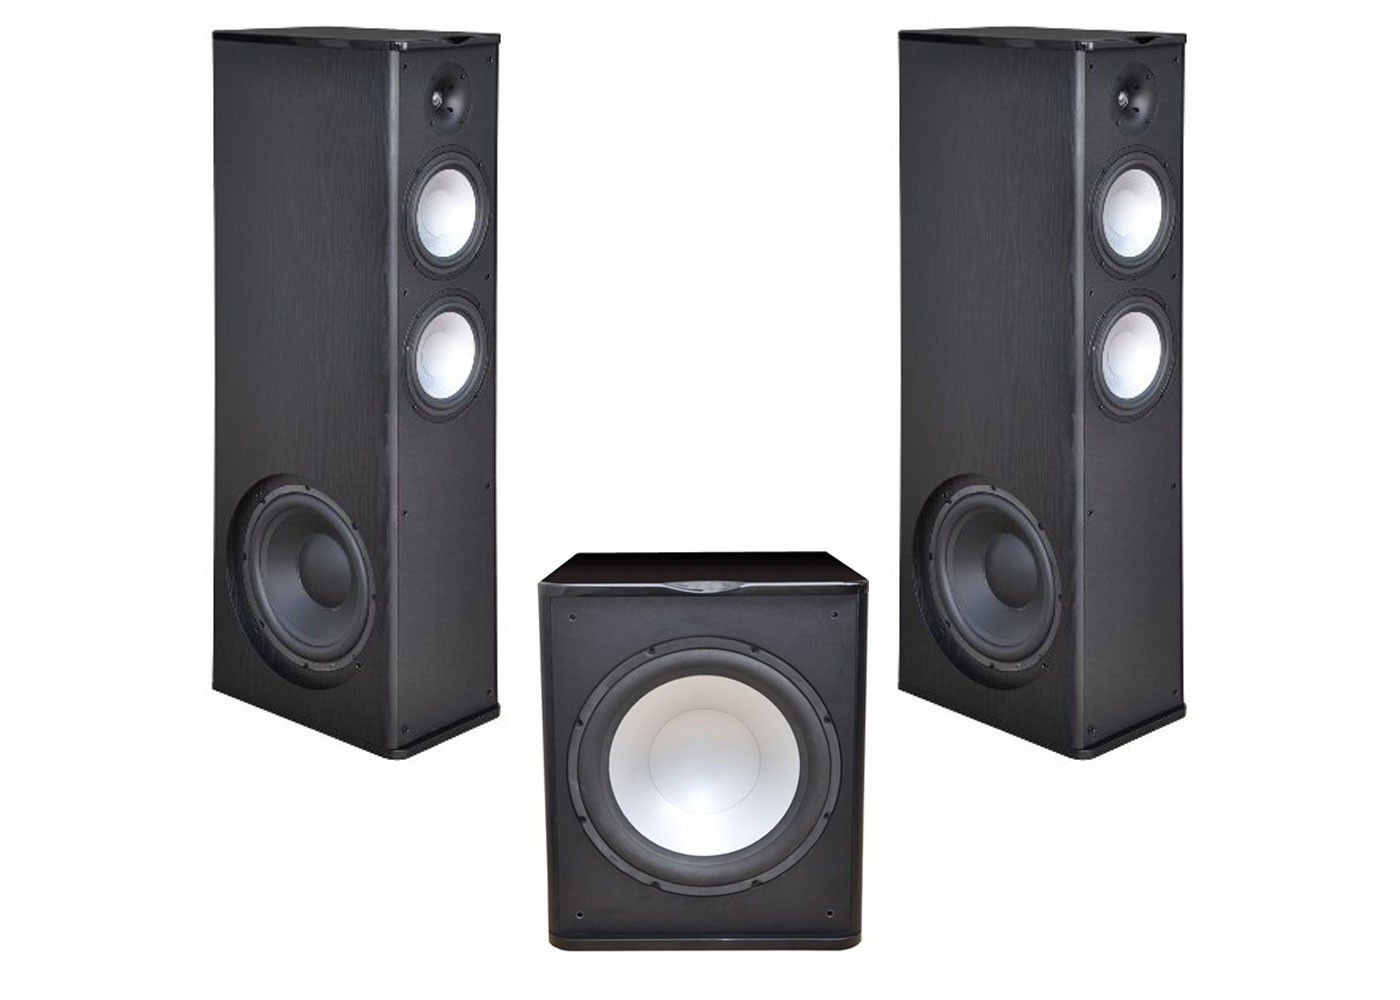 2 Premier Acoustic PA-8 12 Tower Speakers with 1 PA-150 15-inch Subwoofer